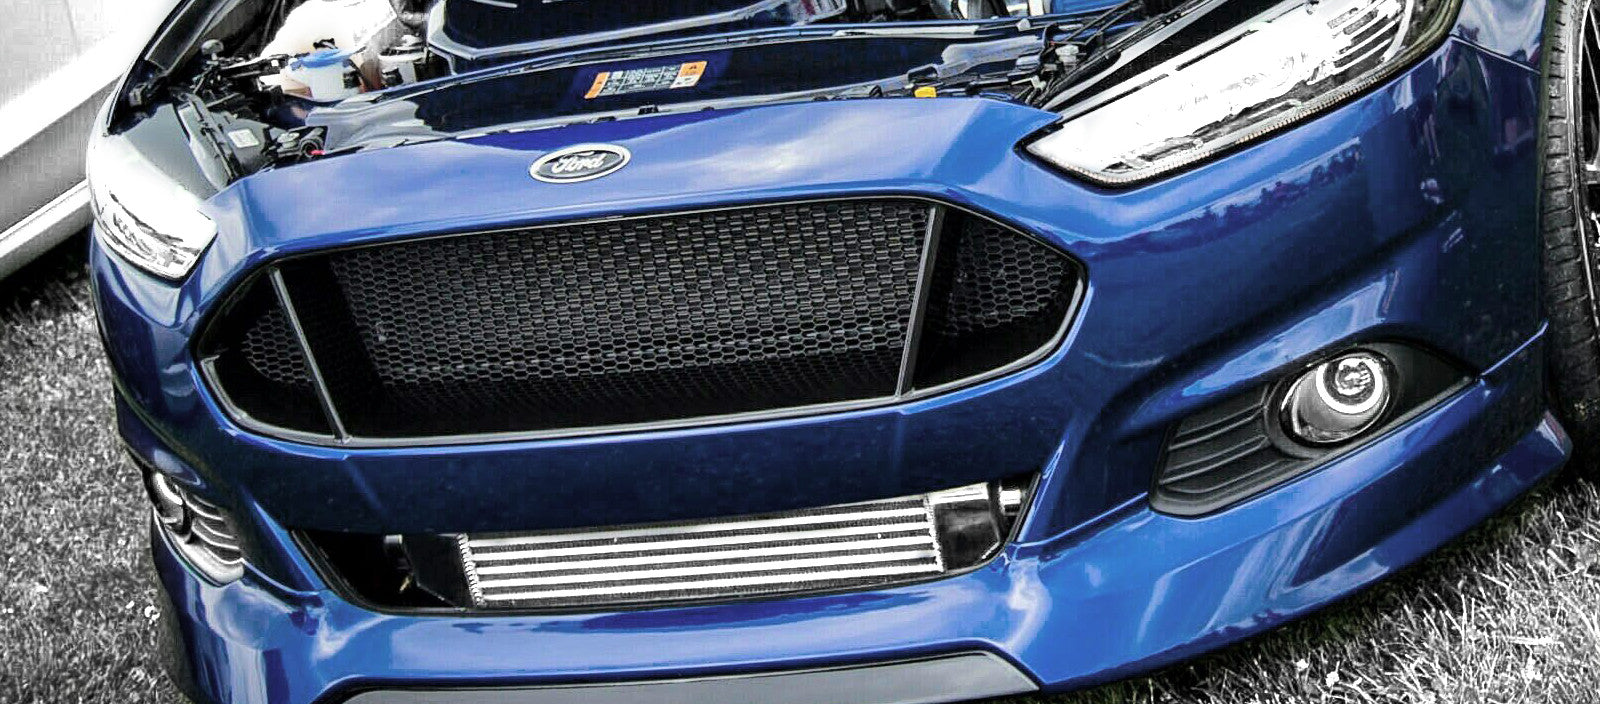 Ford Fusion with Levels Intercooler